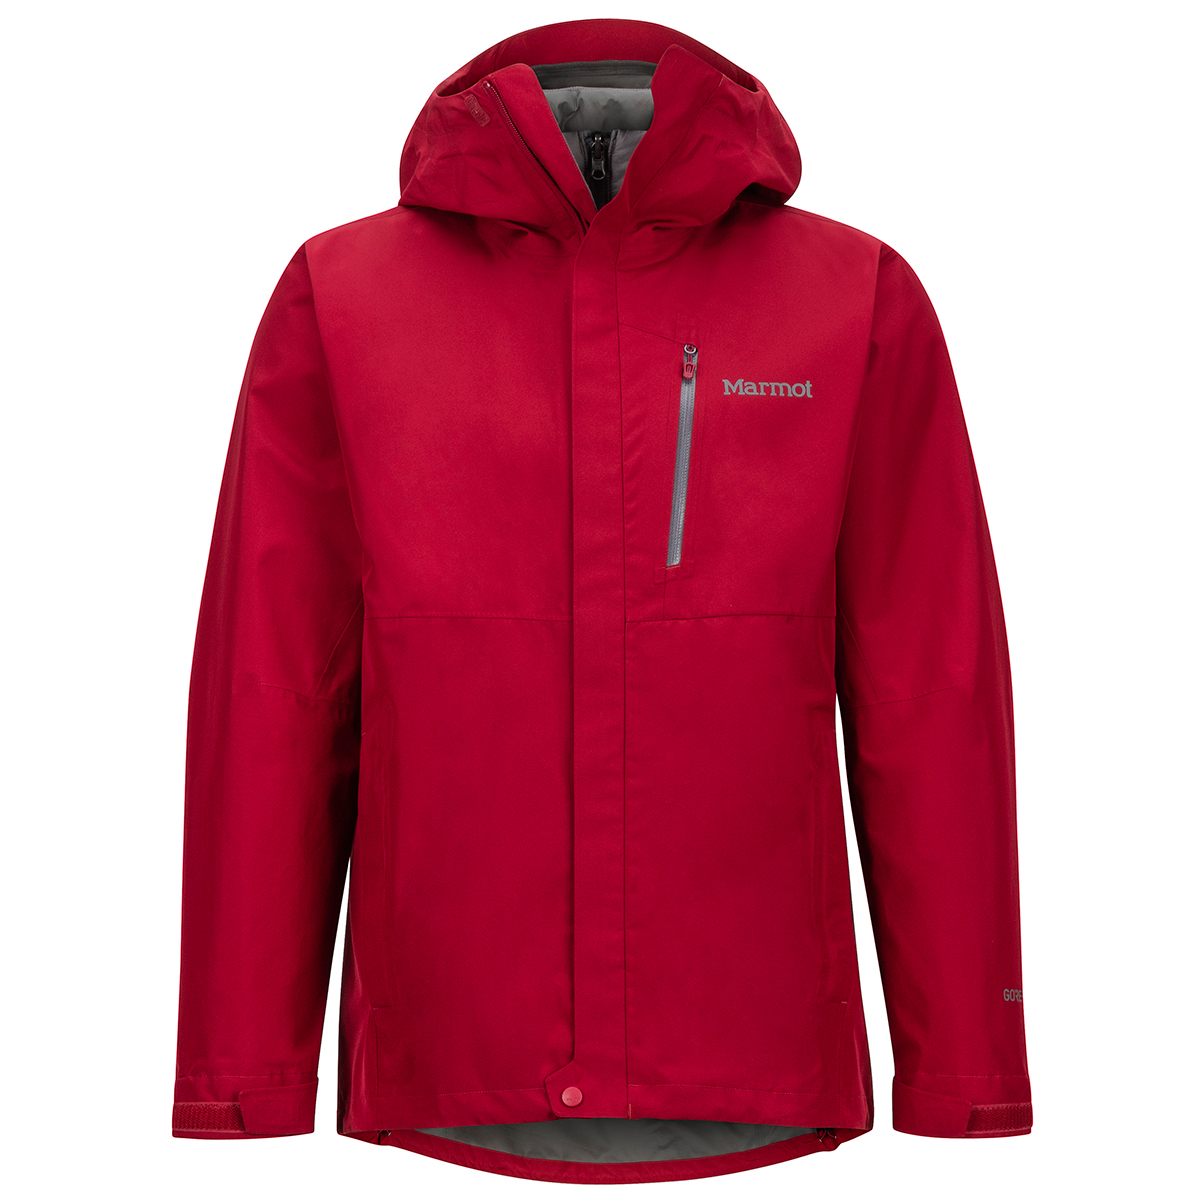 Marmot Men's Minimalist Component Jacket - Red, L